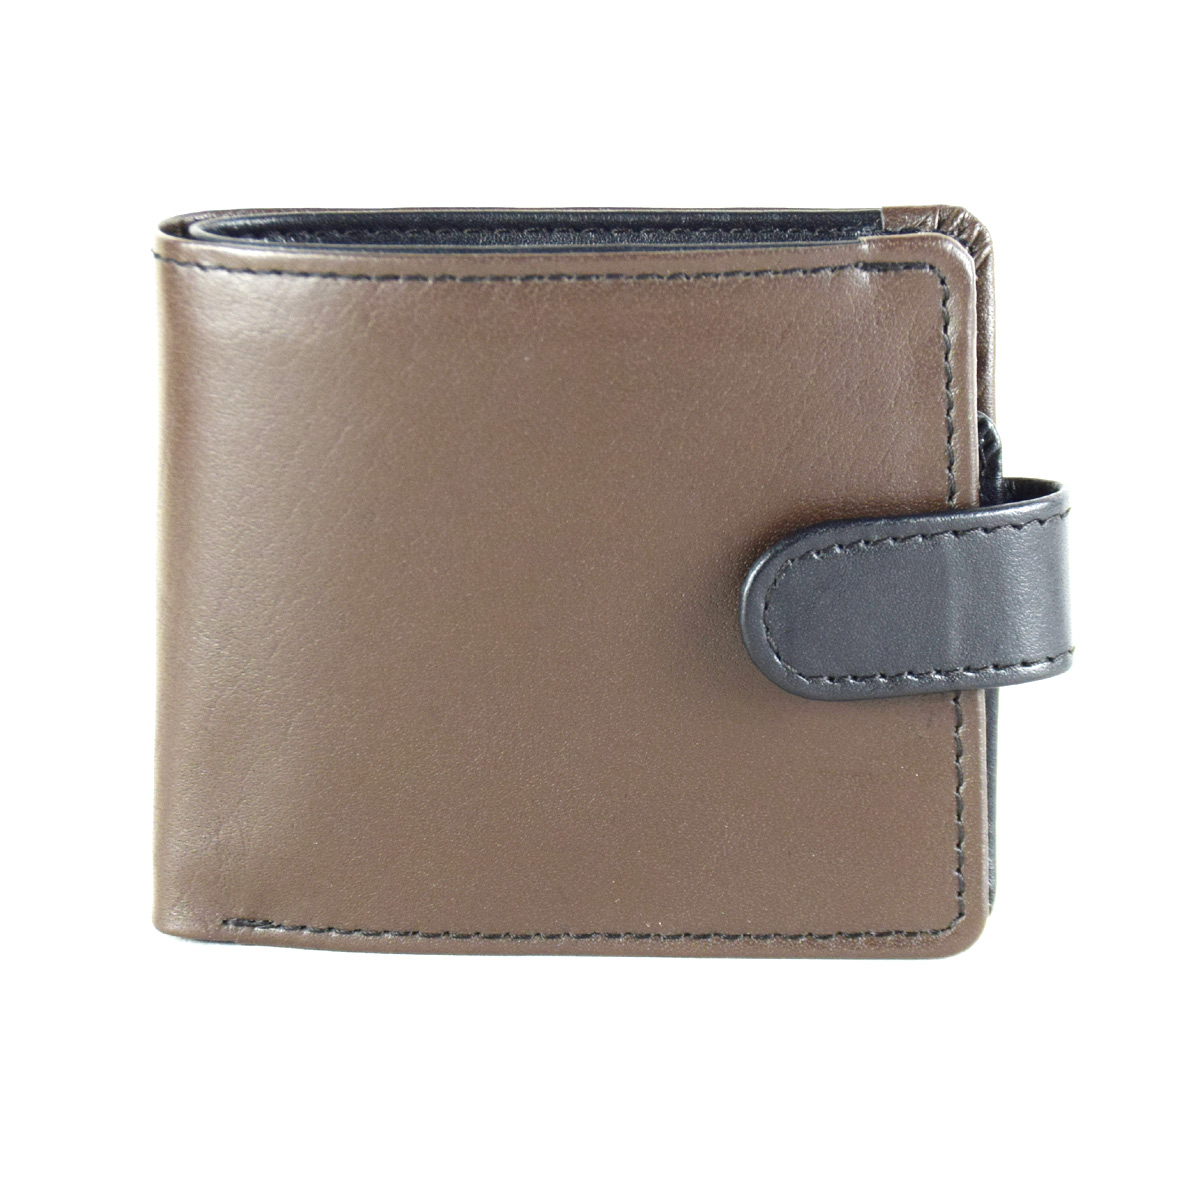 BROWN WALLET WITH TICH BUTTON STRAP